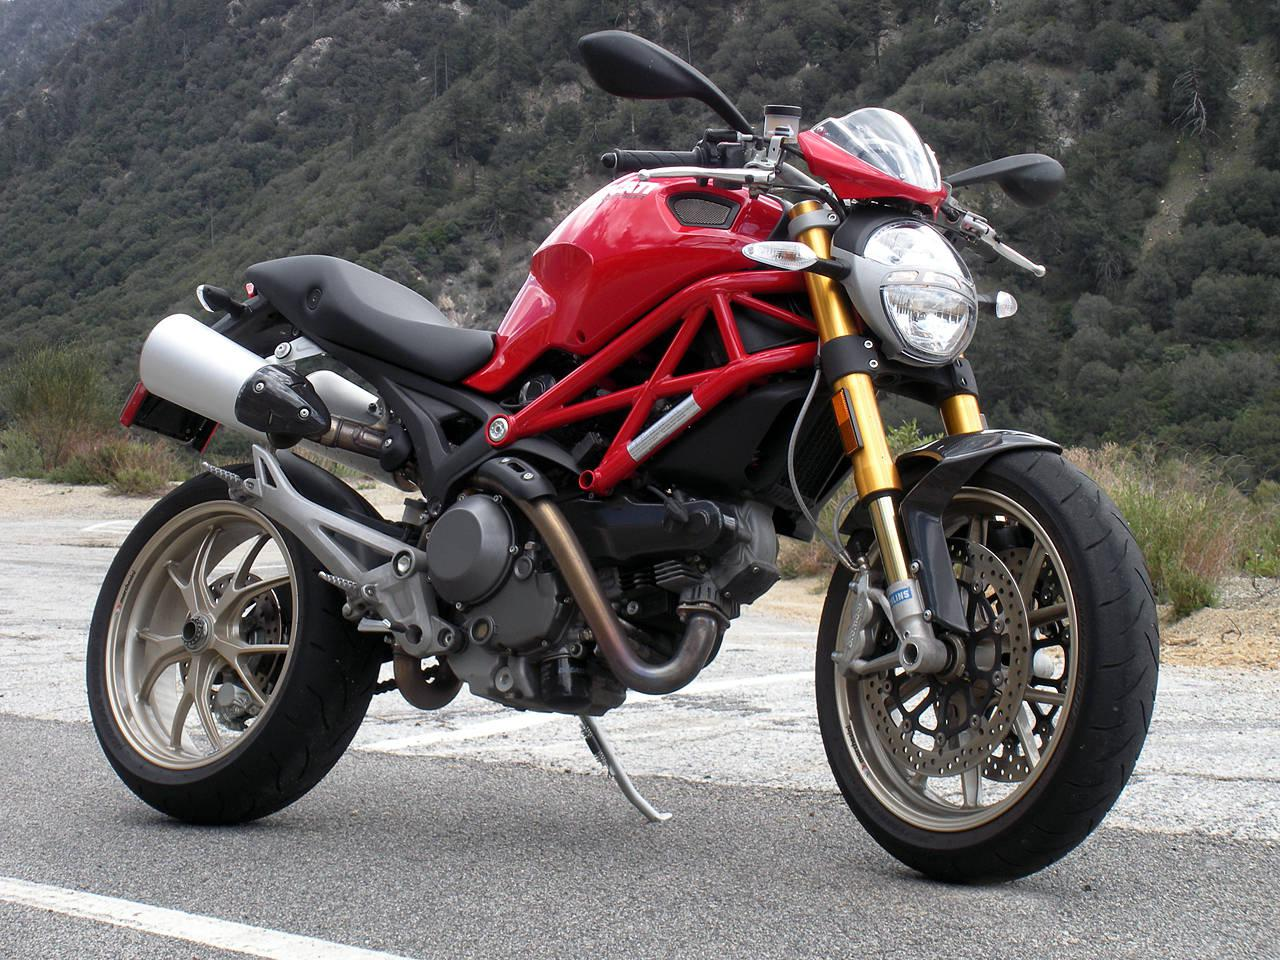 2009 ducati monster 1100 2009 1100s. Black Bedroom Furniture Sets. Home Design Ideas